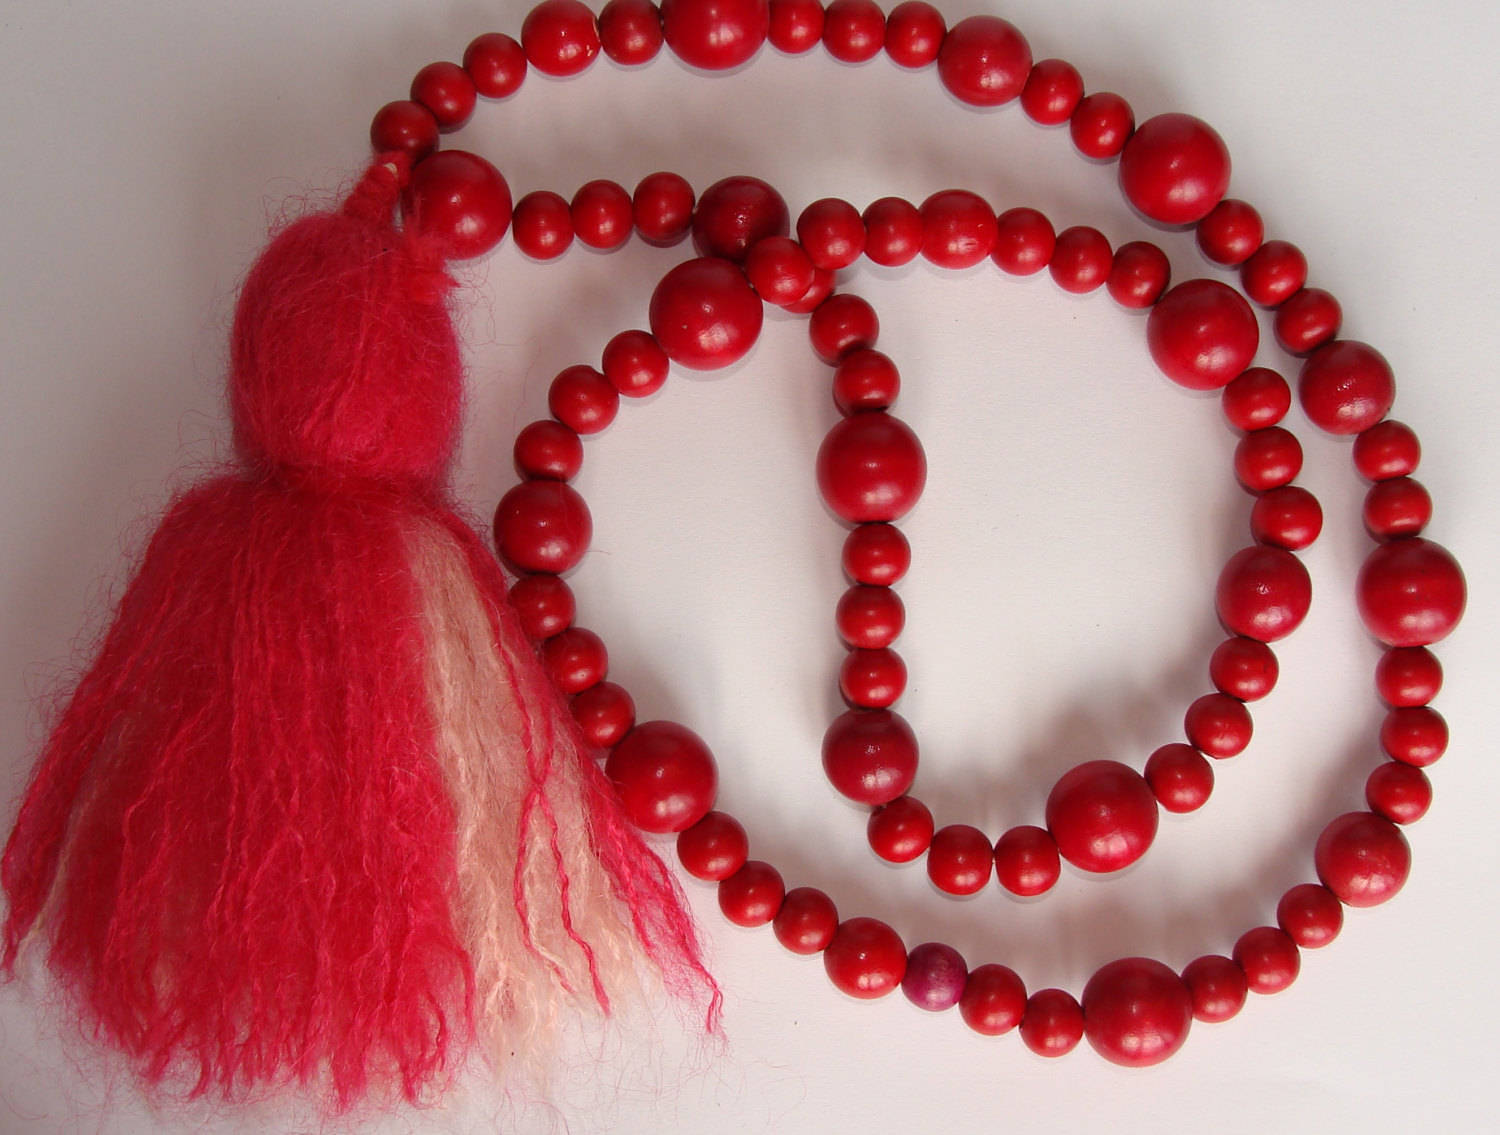 RED WOODEN BEADS with mohair tassel necklace boho vintage (C2)